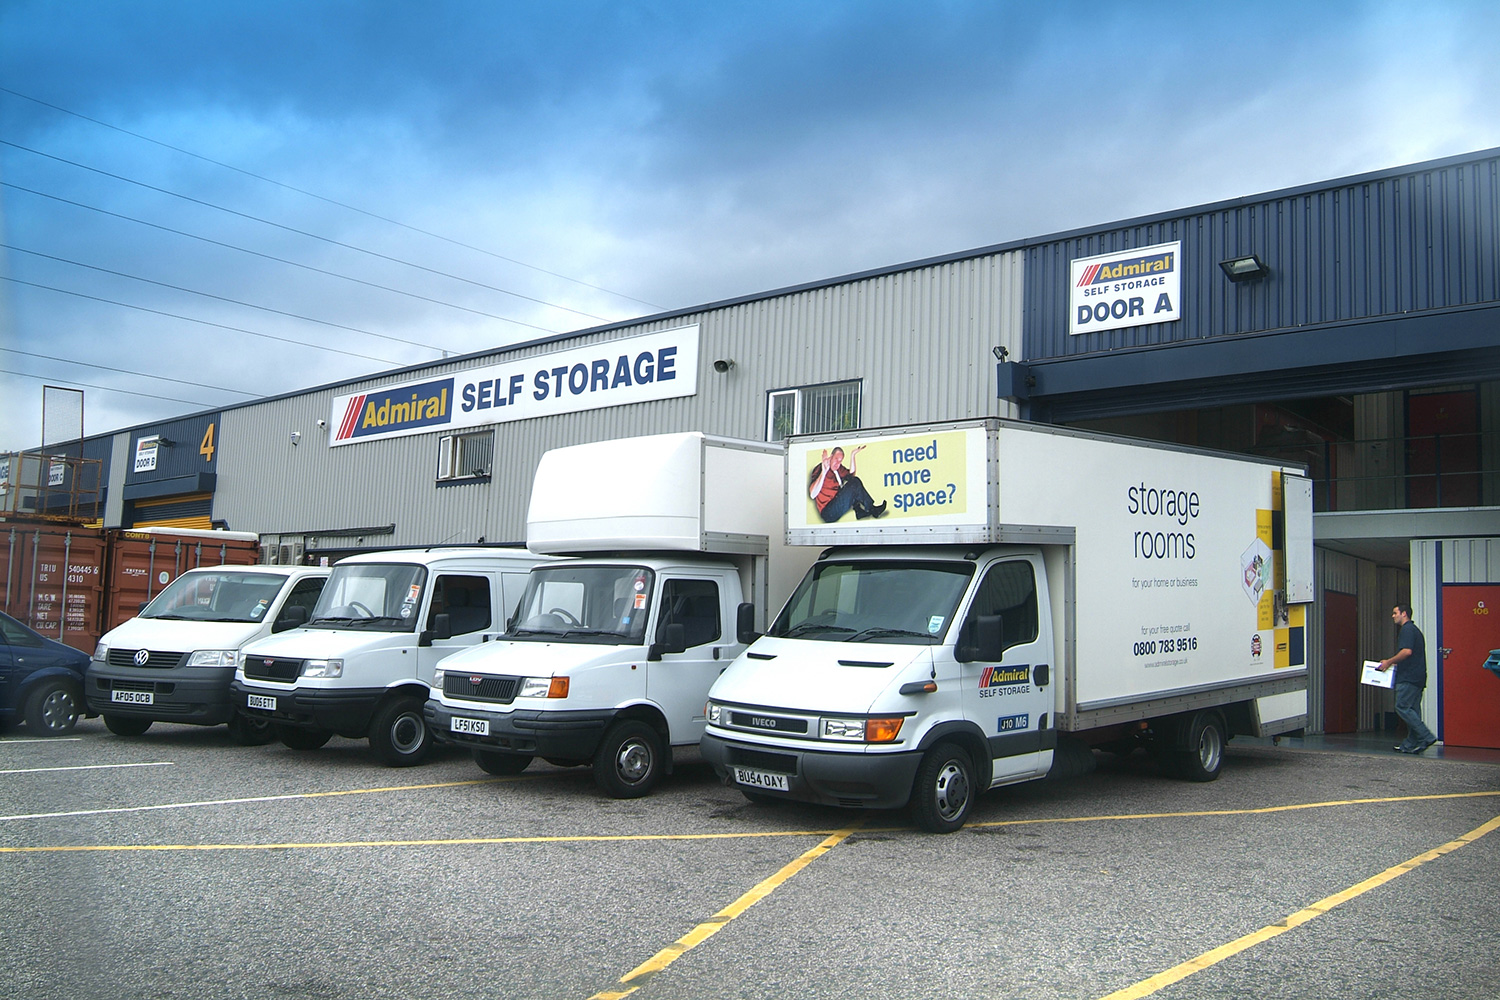 Removals Company And Storage Services Firm For Household Home And Office Furniture Removals By